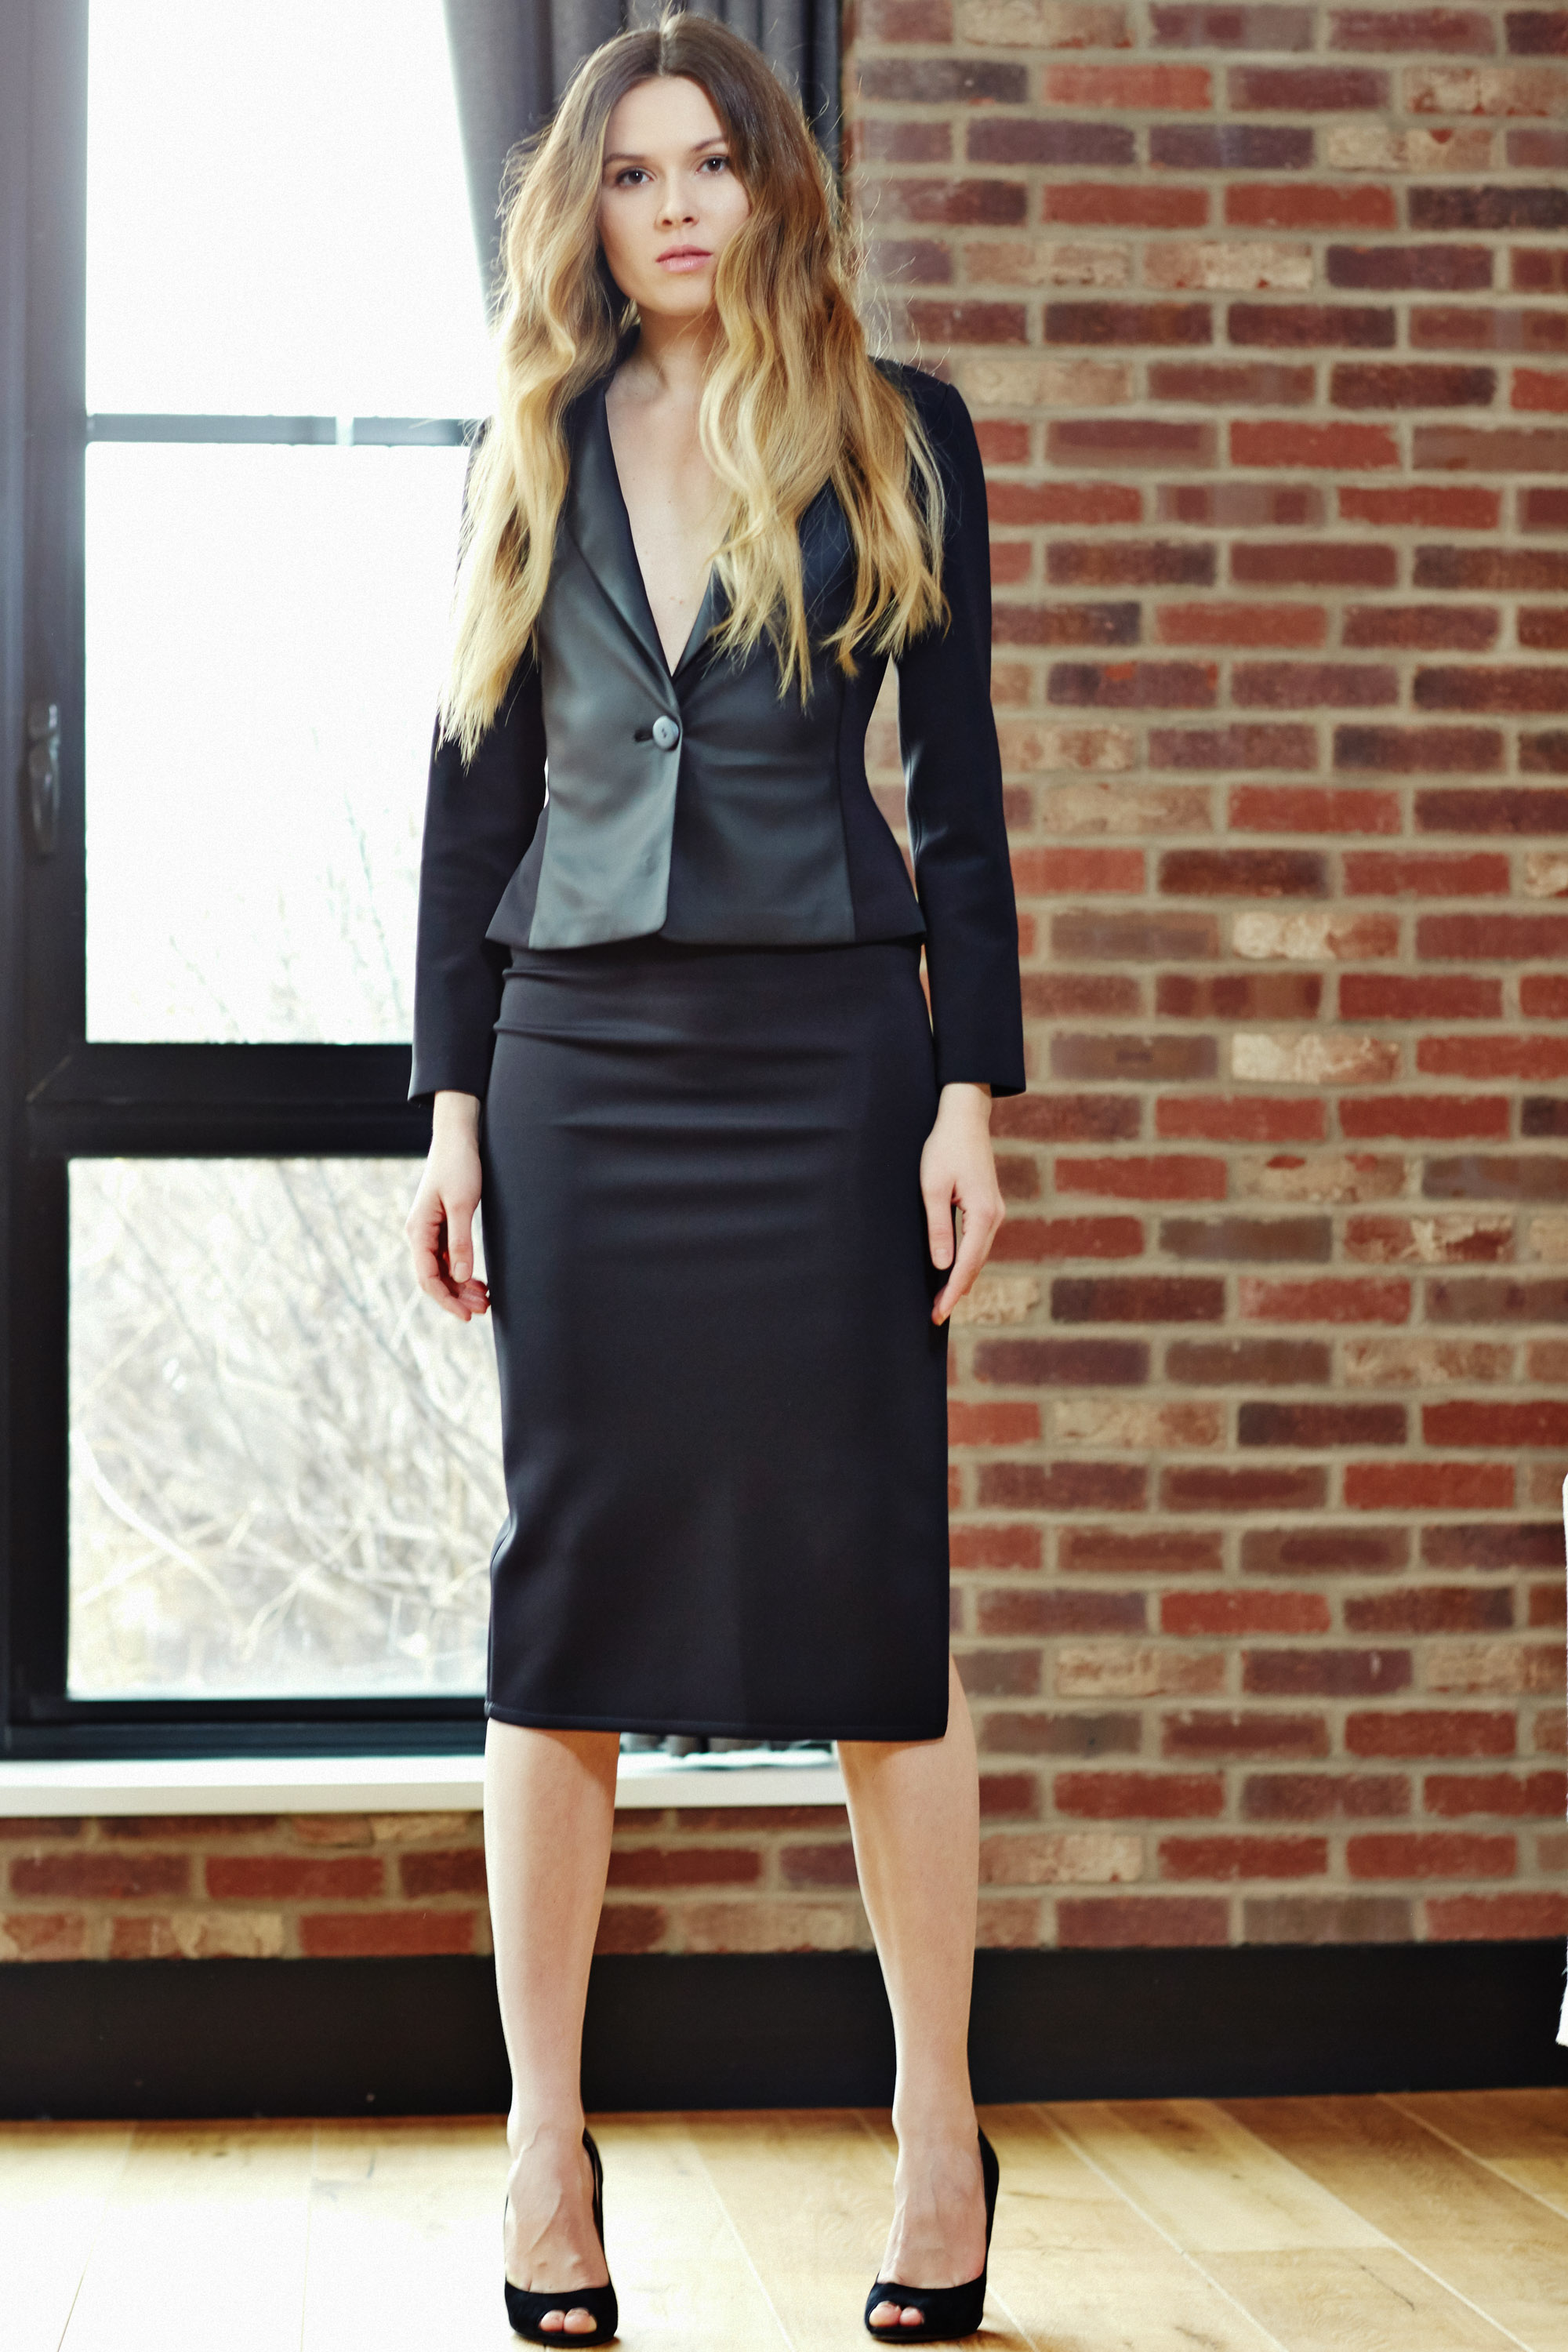 Minika-Ko-Kovasky-Collection-Lookbook-Fashion-Performance-Fabrics-Black-PowerSuit-Faux-Leather-Suit-Jacket-and-high-slit-skirt-with-reflective-slit-career-wear-business-casual-style.jpg